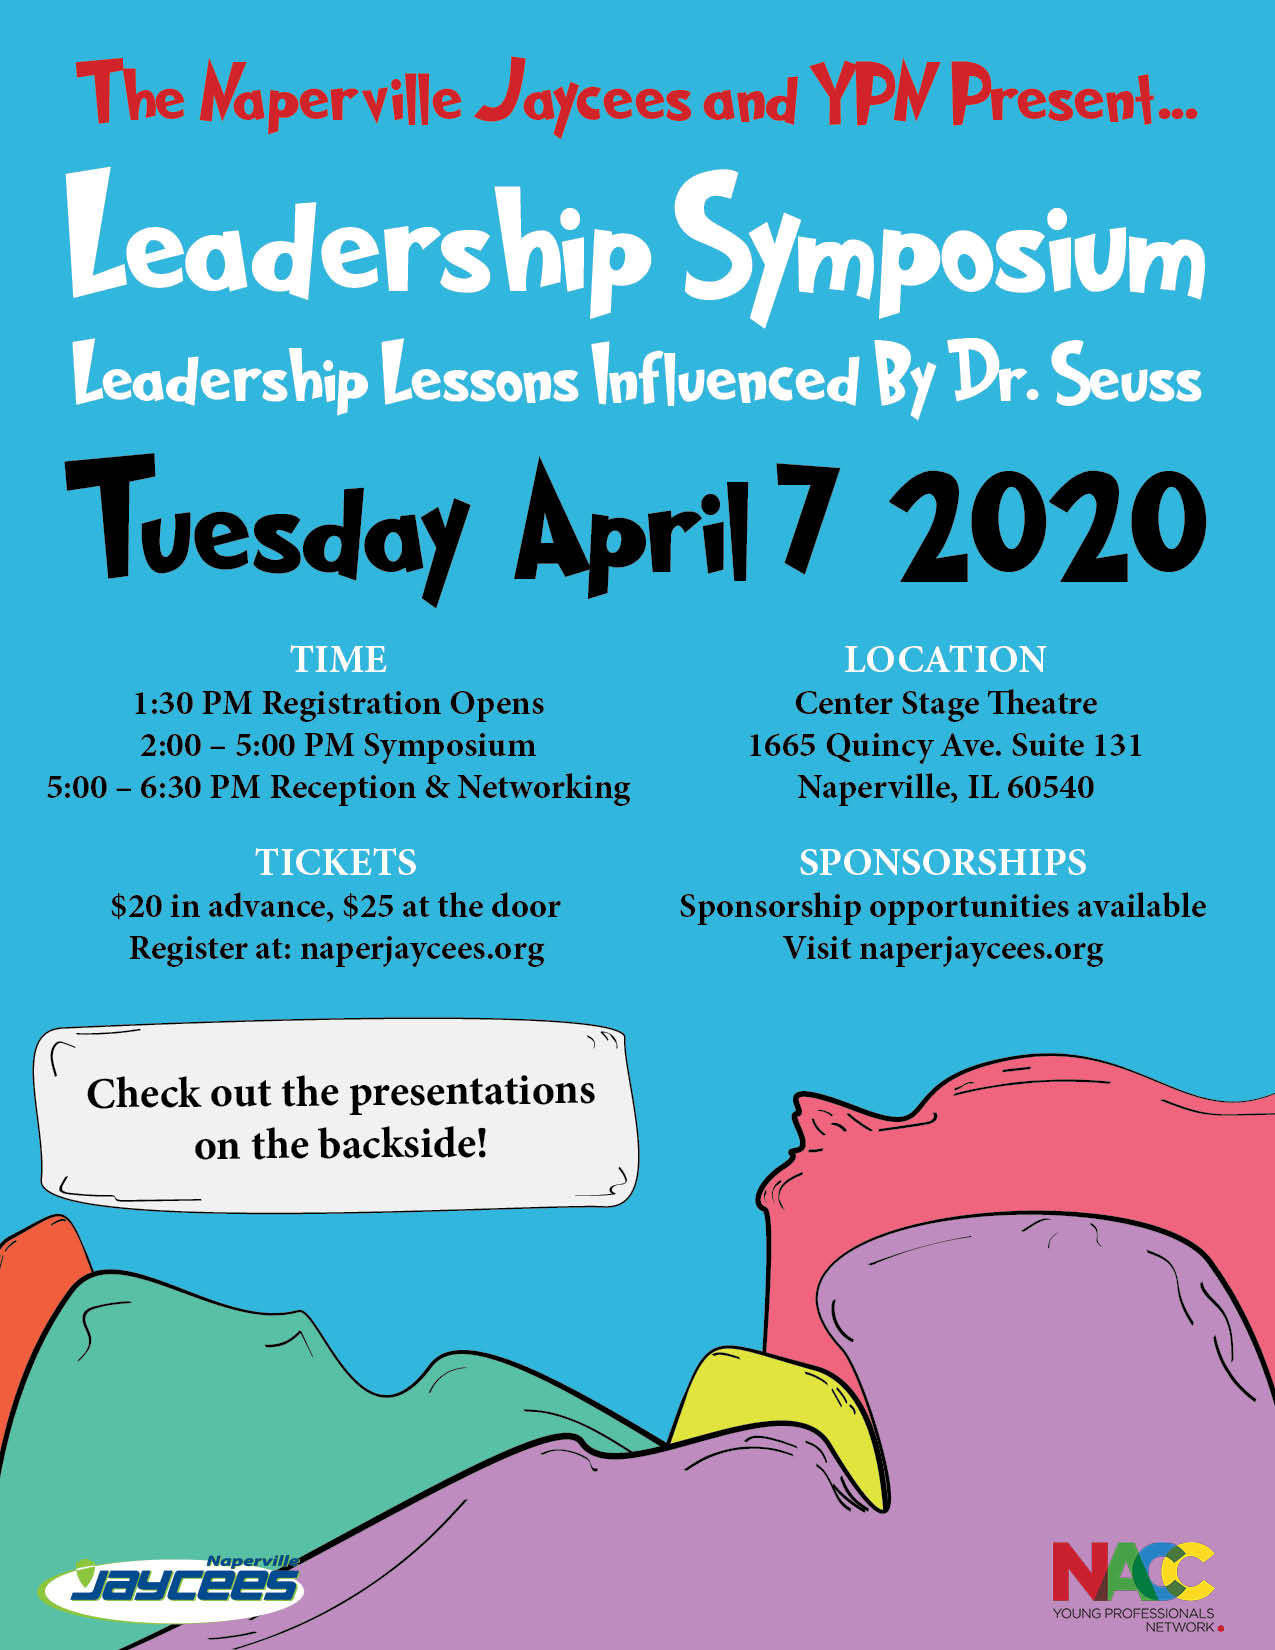 Leadership Symposium @ Center Stage Theater